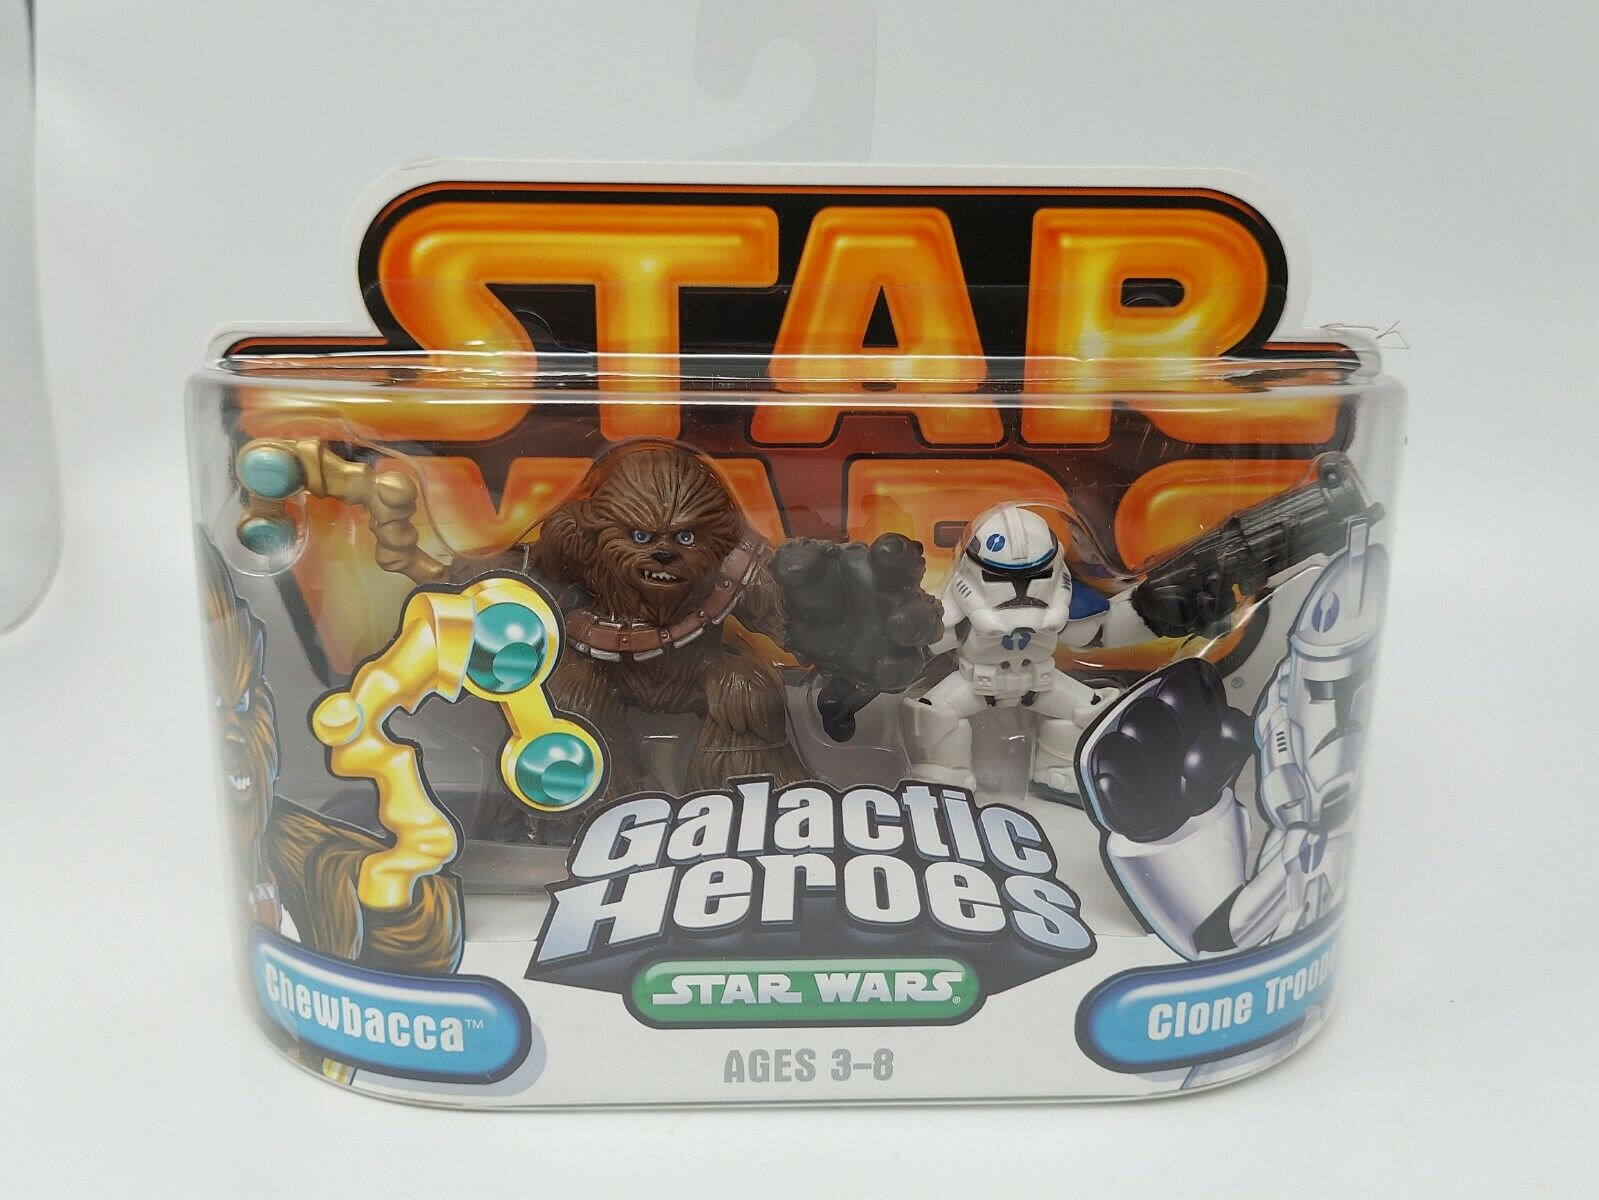 Star Wars Galactic Heroes Chewbacca and Clone Trooper 2 Pack - Factory Sealed